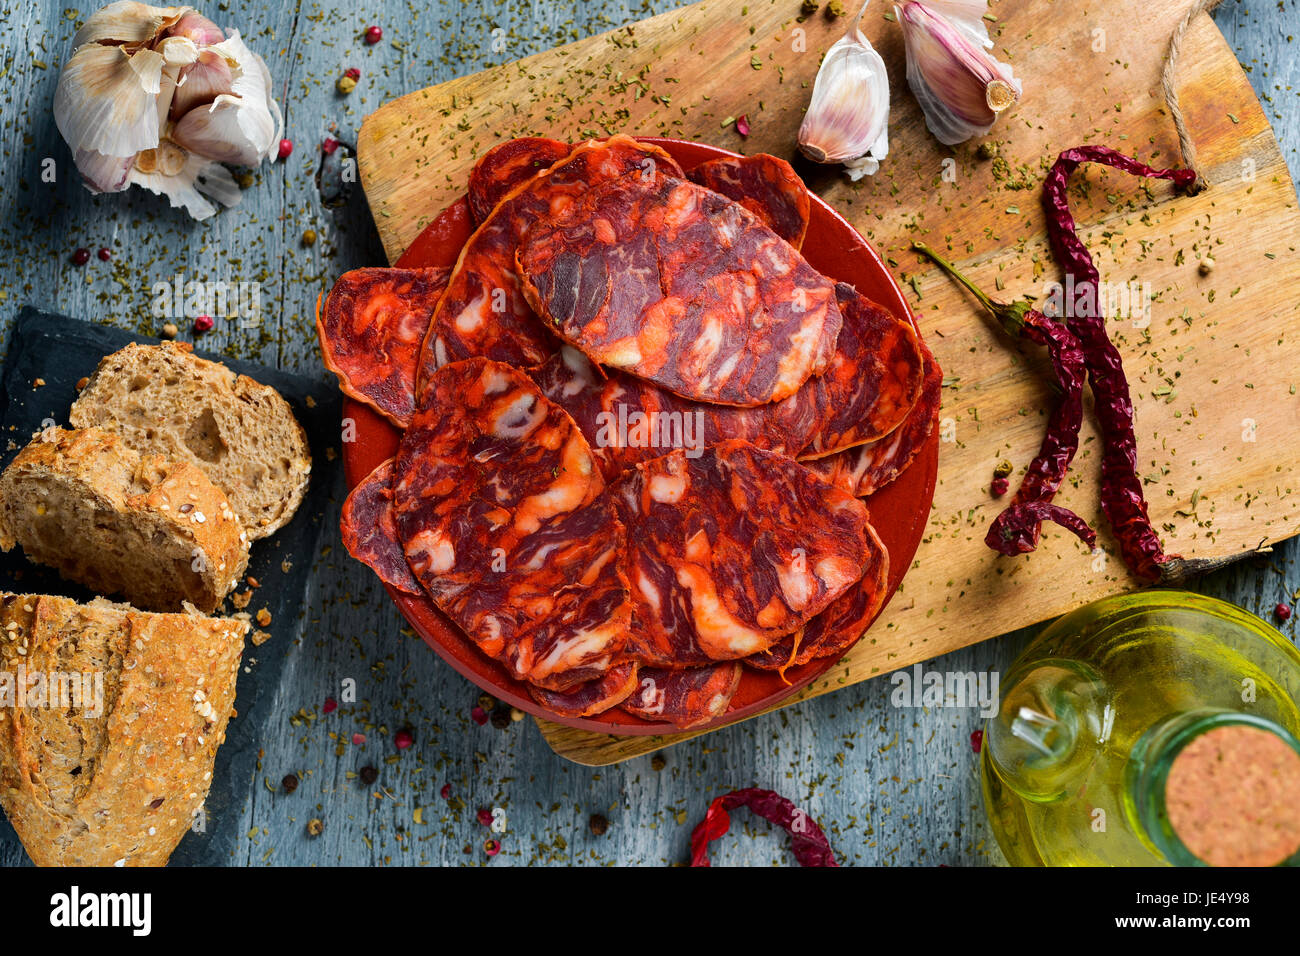 high-angle shot of an earthenware plate with some slices of spanish chorizo, cured pork sausage, some slices of - Stock Image